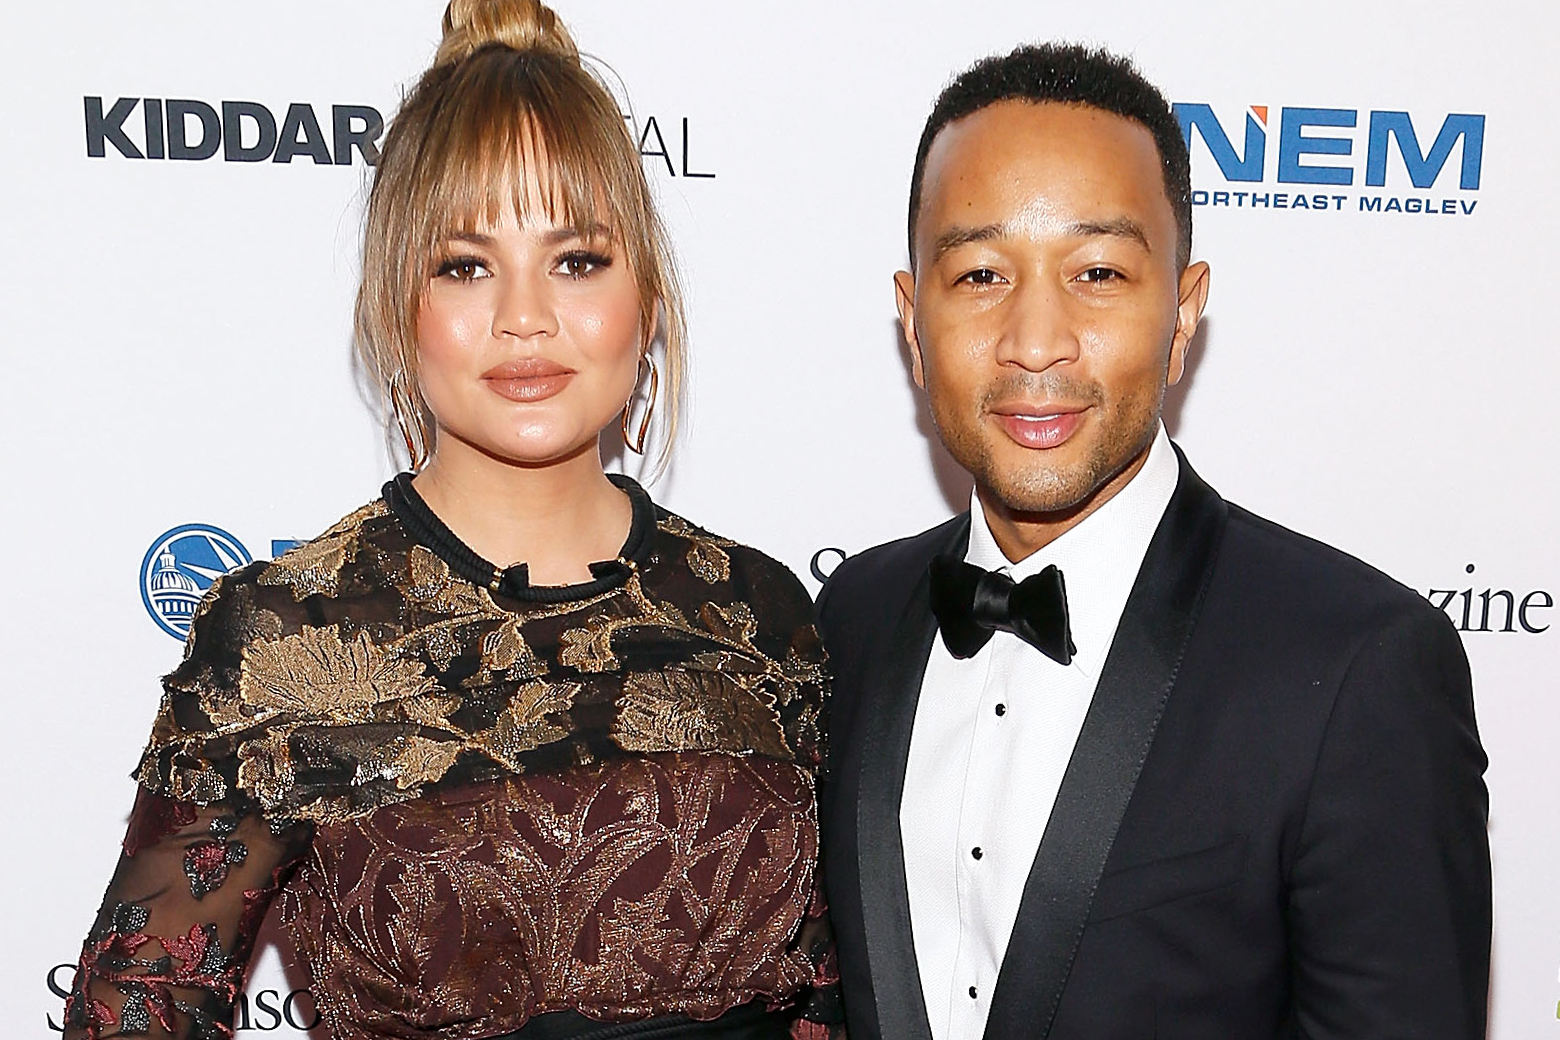 Chrissy Teigen & John Legend Welcome Their Baby Boy!